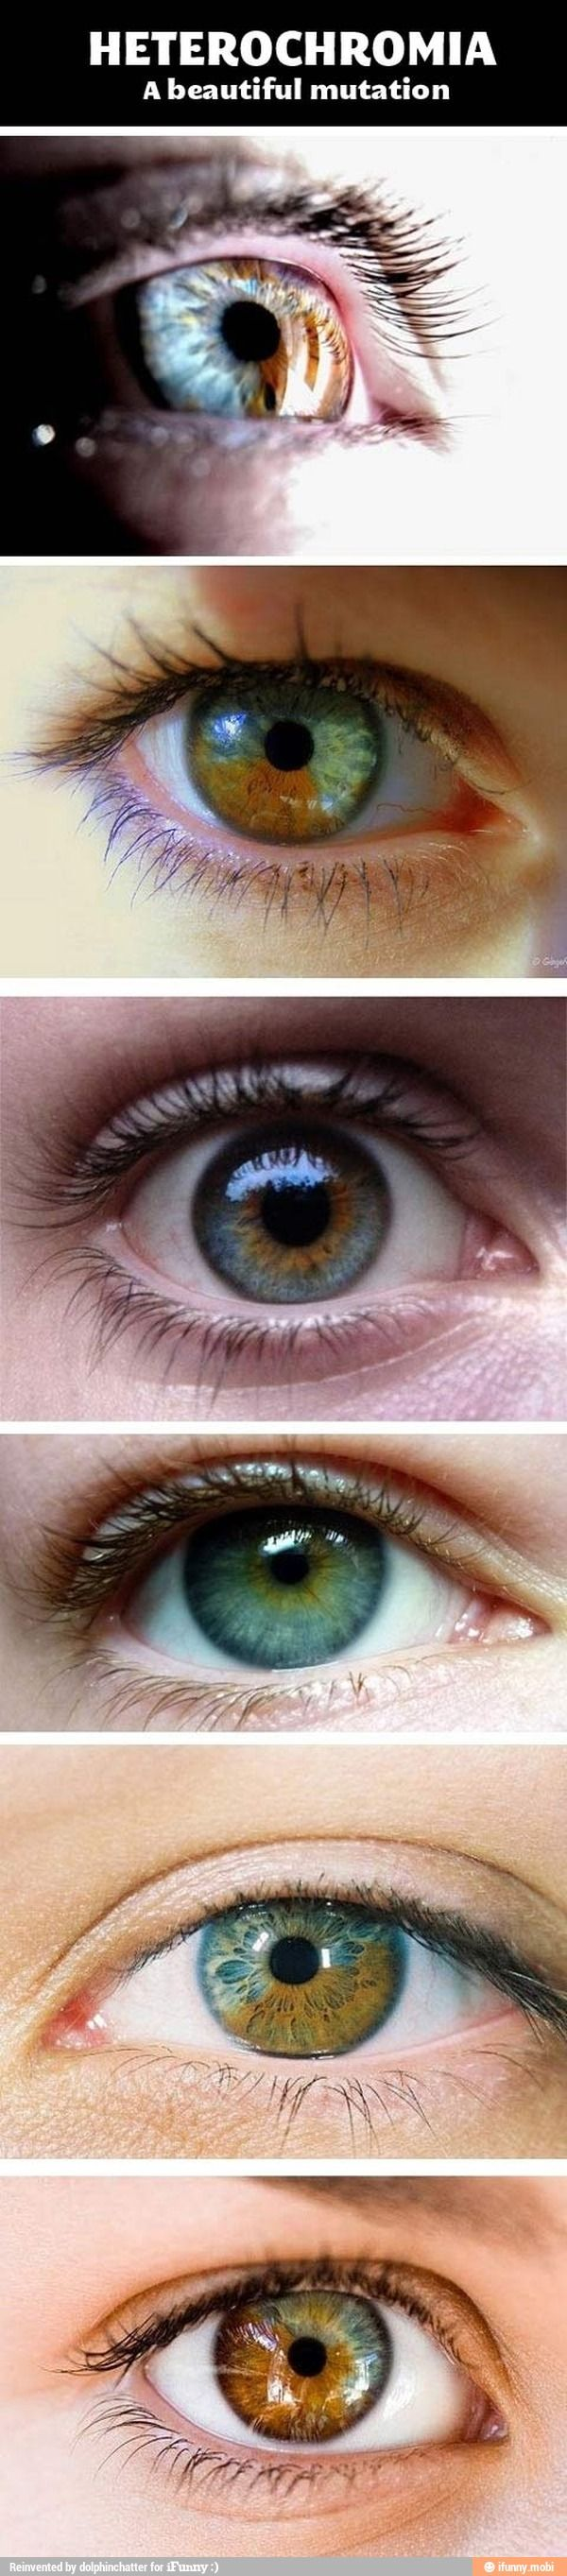 Heterochromia: A Beautiful Mutation via iFunny :)